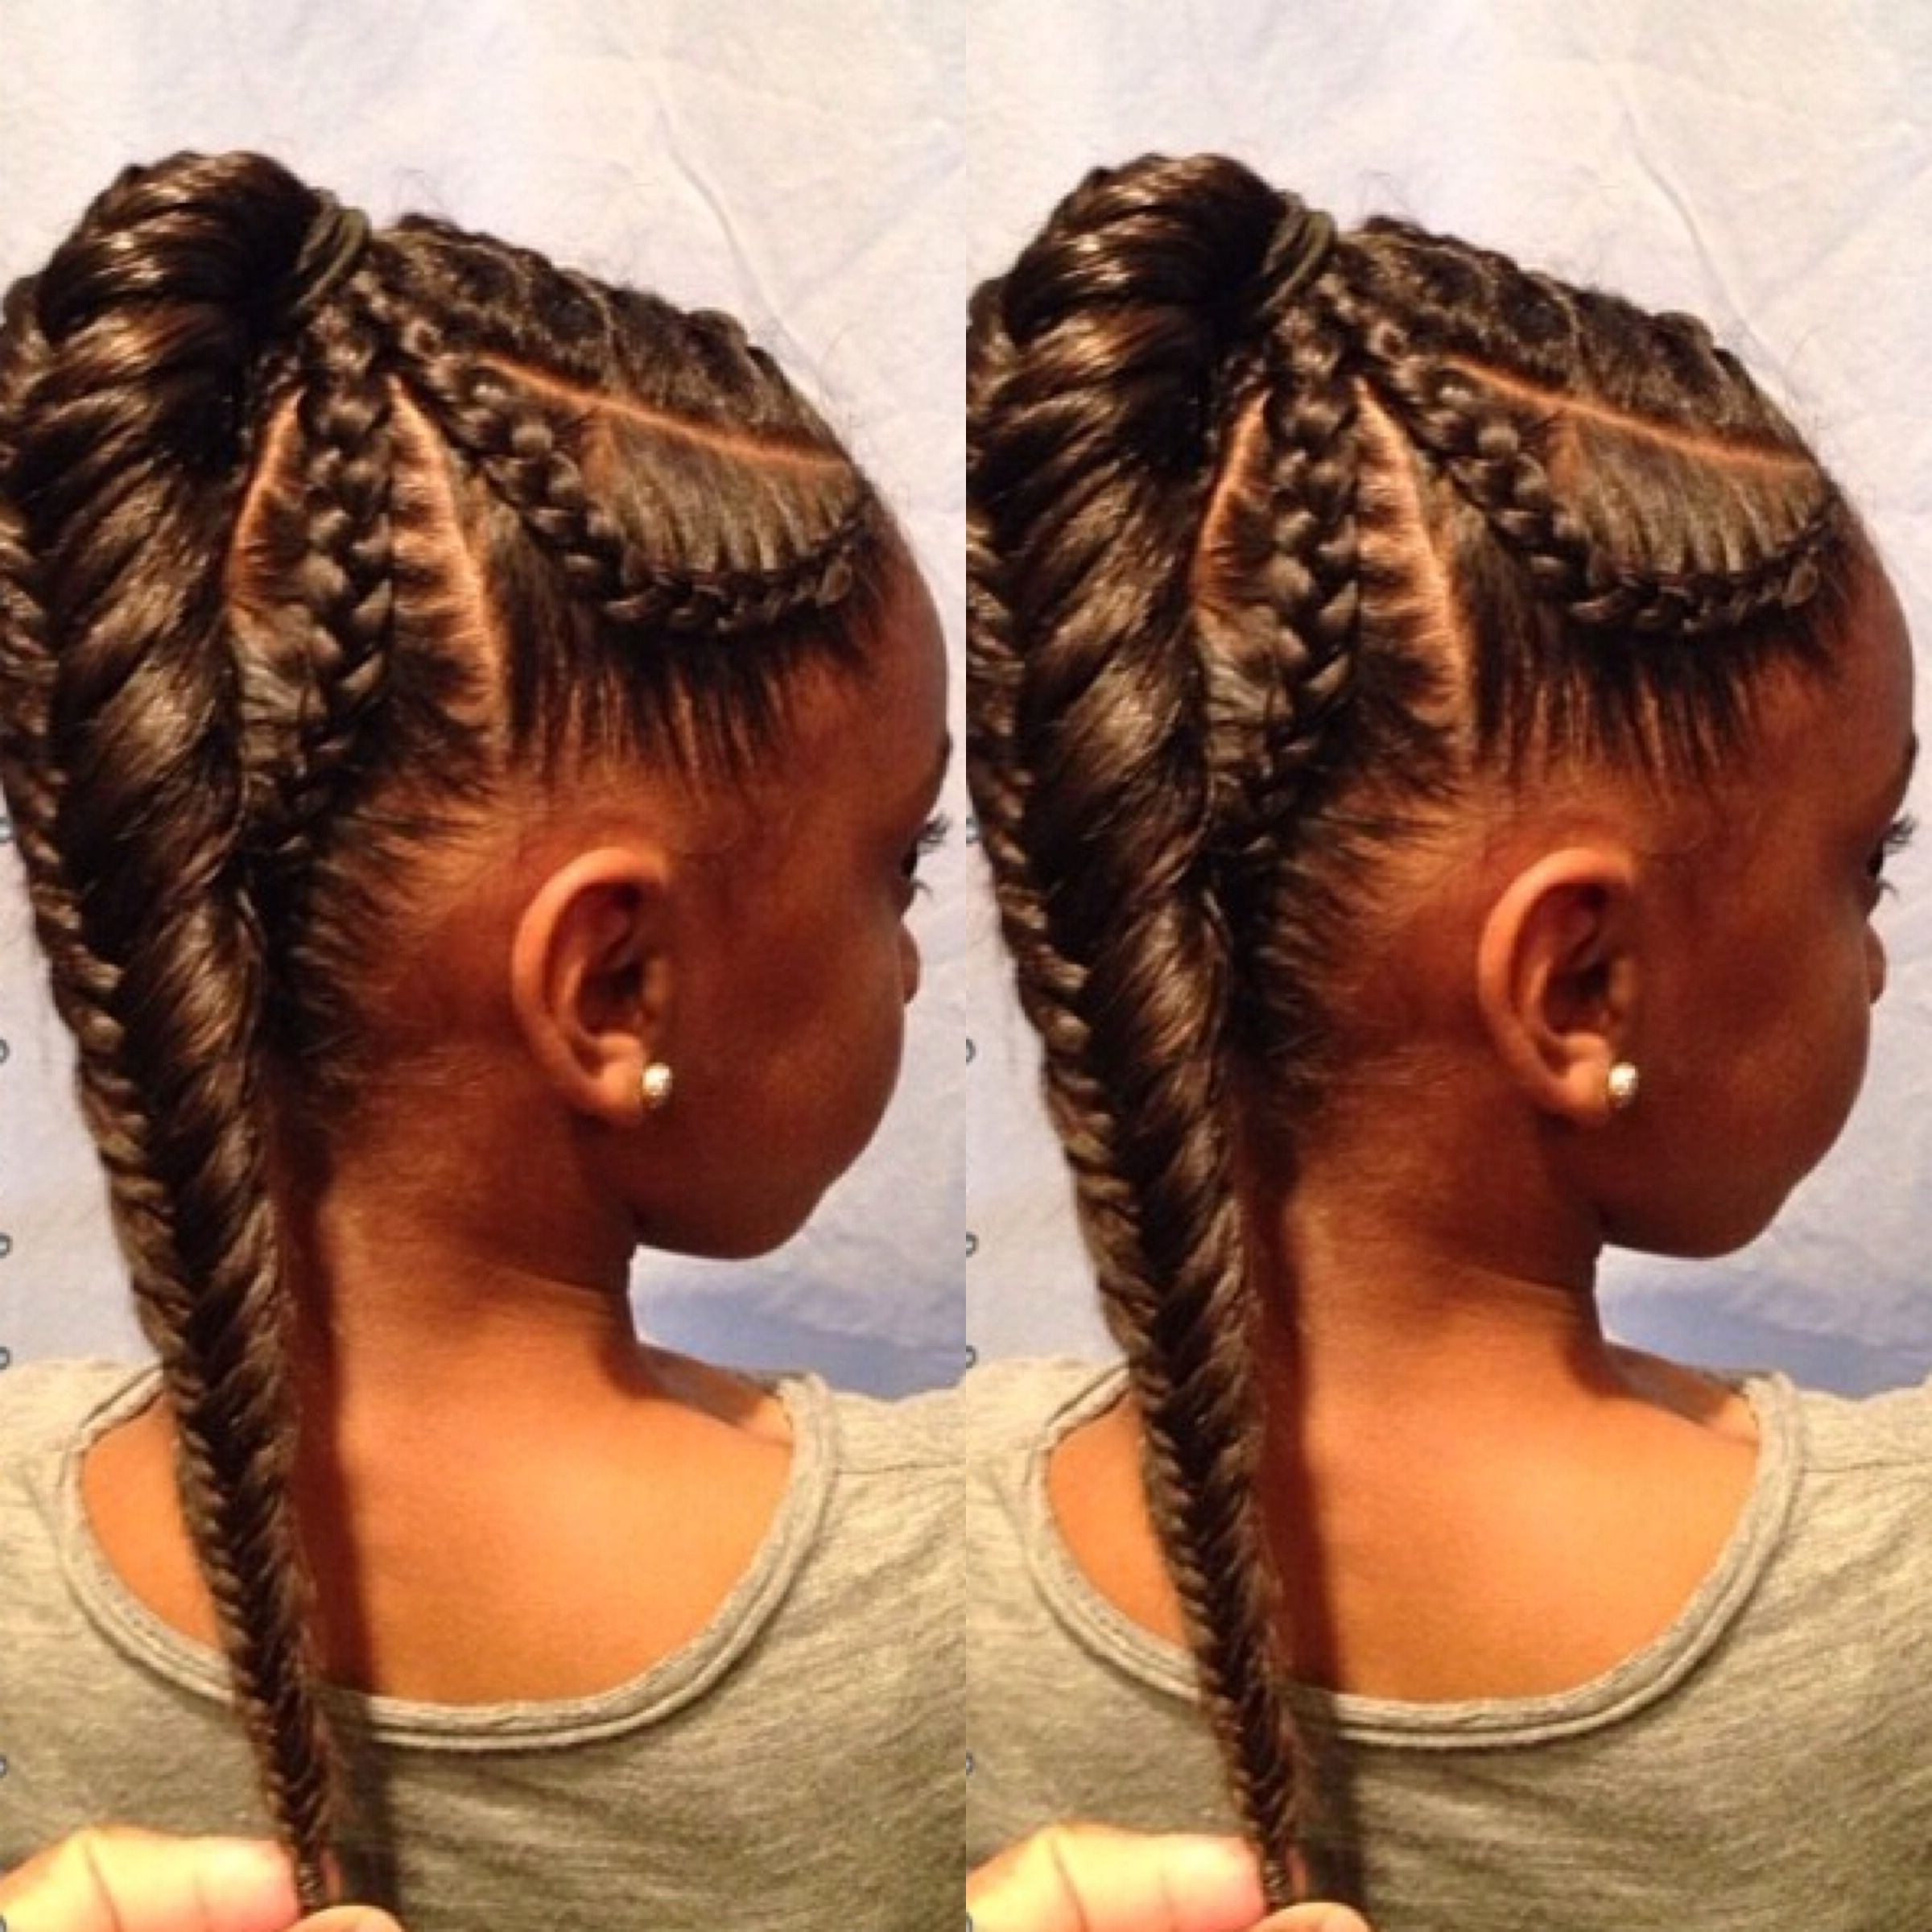 Fashionable Neat Fishbone Braid Hairstyles With Pin On Natural Hair And Braids (View 2 of 20)